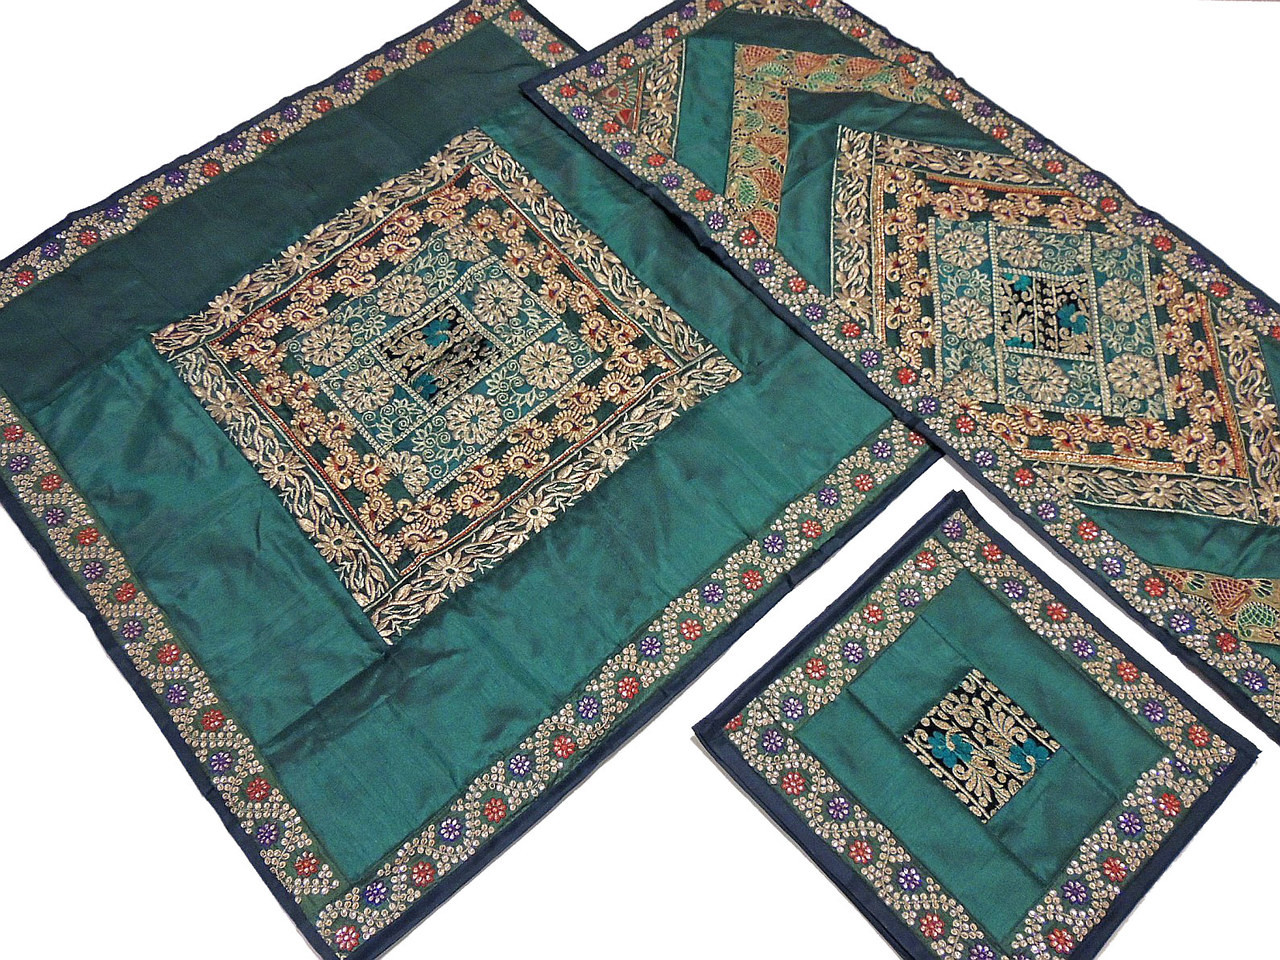 Decorative Table Linens Set - Green Fine Embroidery Designer Overlay Runner Placemats.  sc 1 st  NovaHaat : table runner and placemat set - pezcame.com